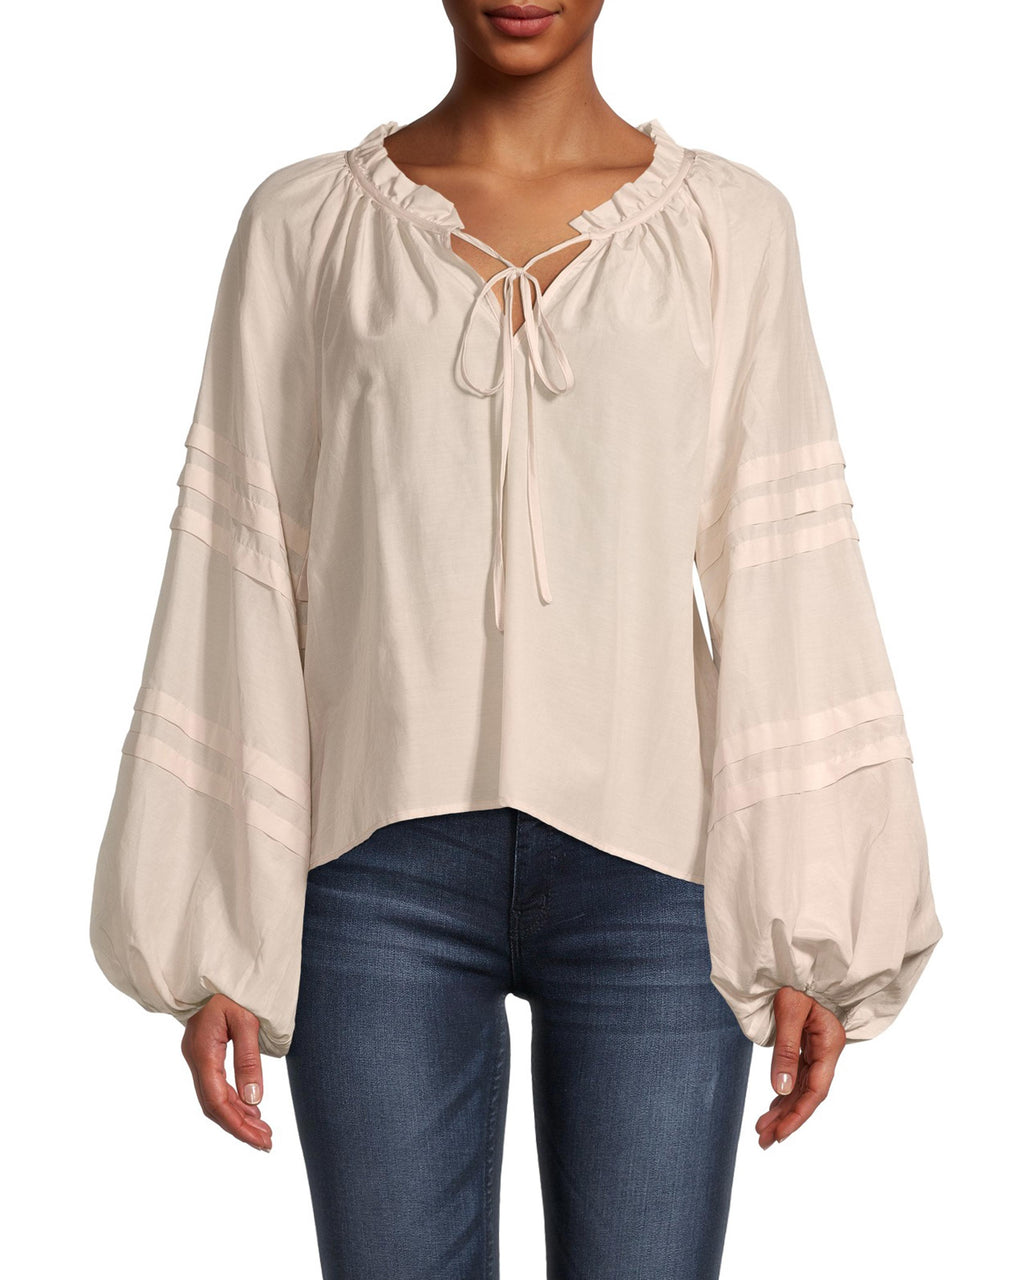 CT18573 - SOLID PEASANT BLOUSE - tops - blouses - Feminine and effortless, this lightweight peasant blouse features a ruffled neckline which can be left tied or untied, and subtle stripes on the puffed sleeves. Cut in a creamy parchment color. Add 1 line break Stylist Tip: Tuck into your favorite denim.